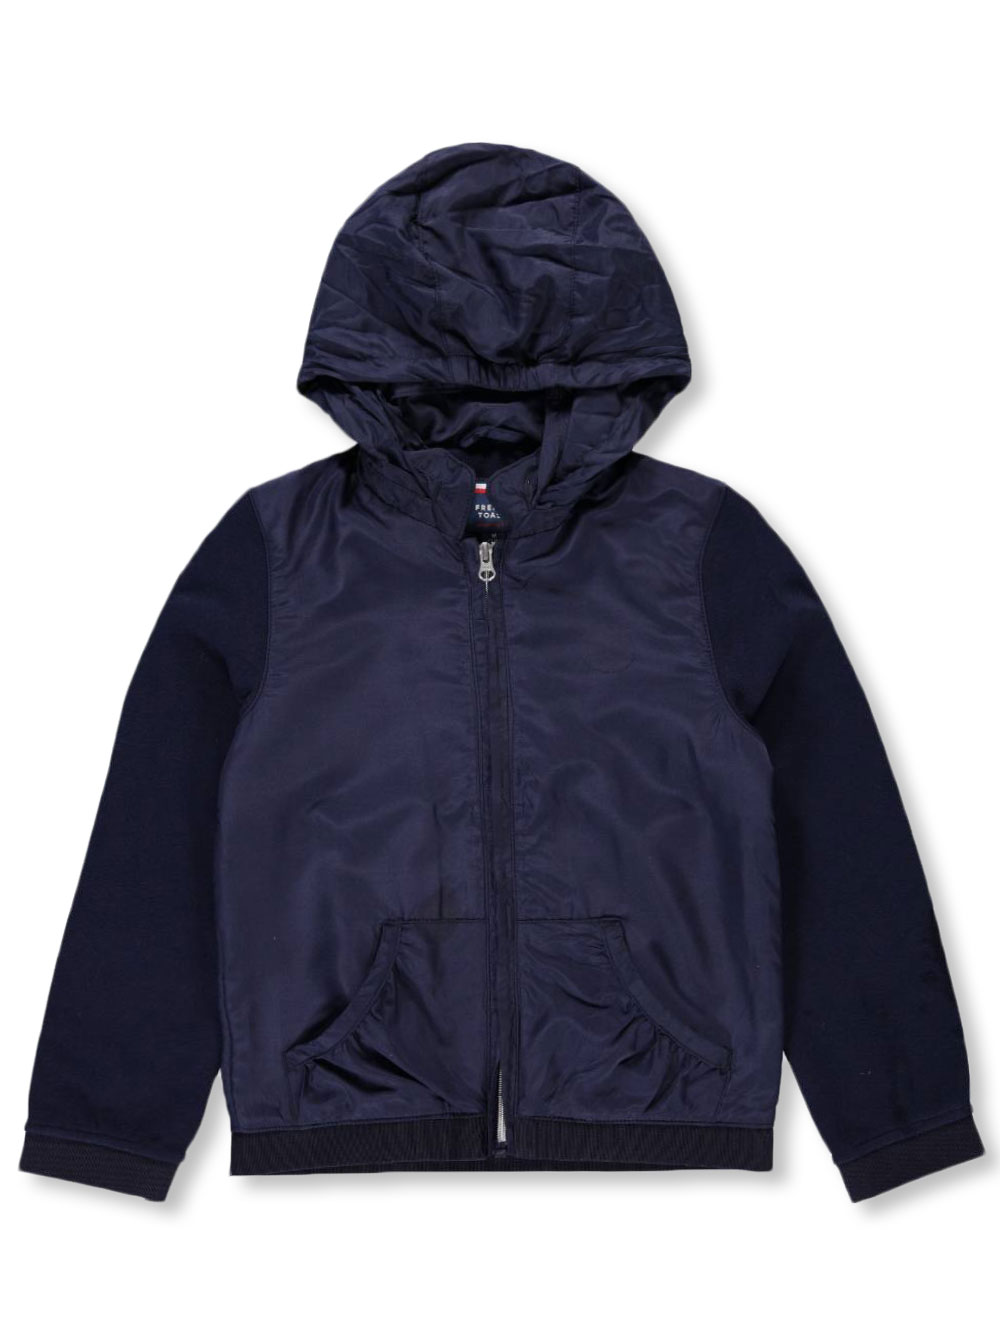 Outerwear Hooded Jacket